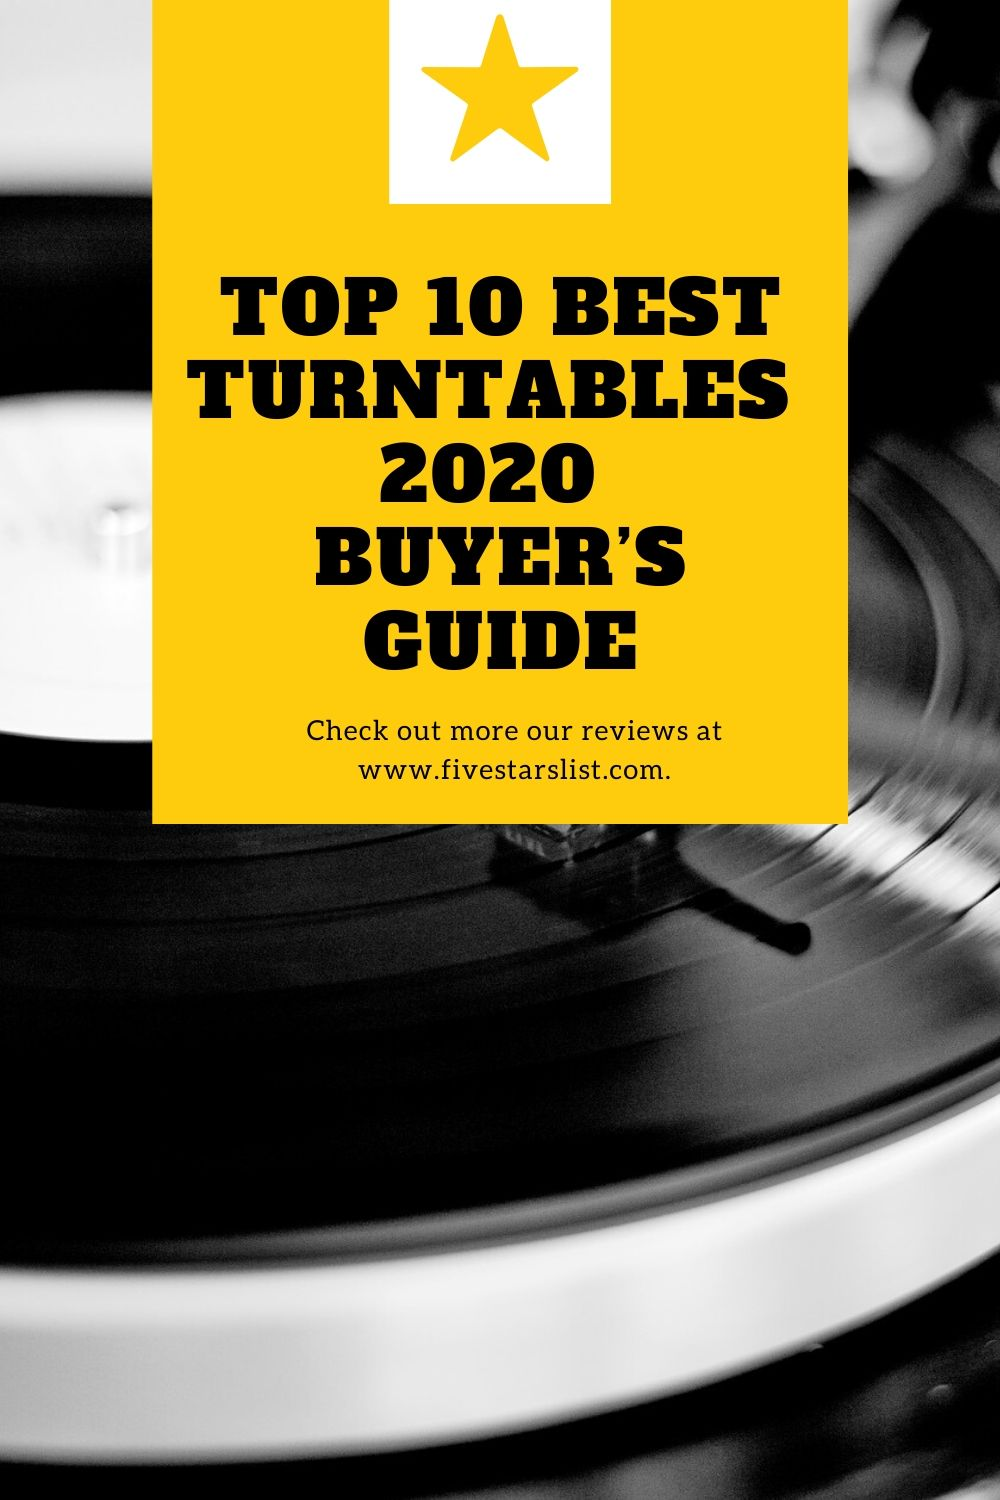 Top 10 Best Turntables – Buyer's Guide